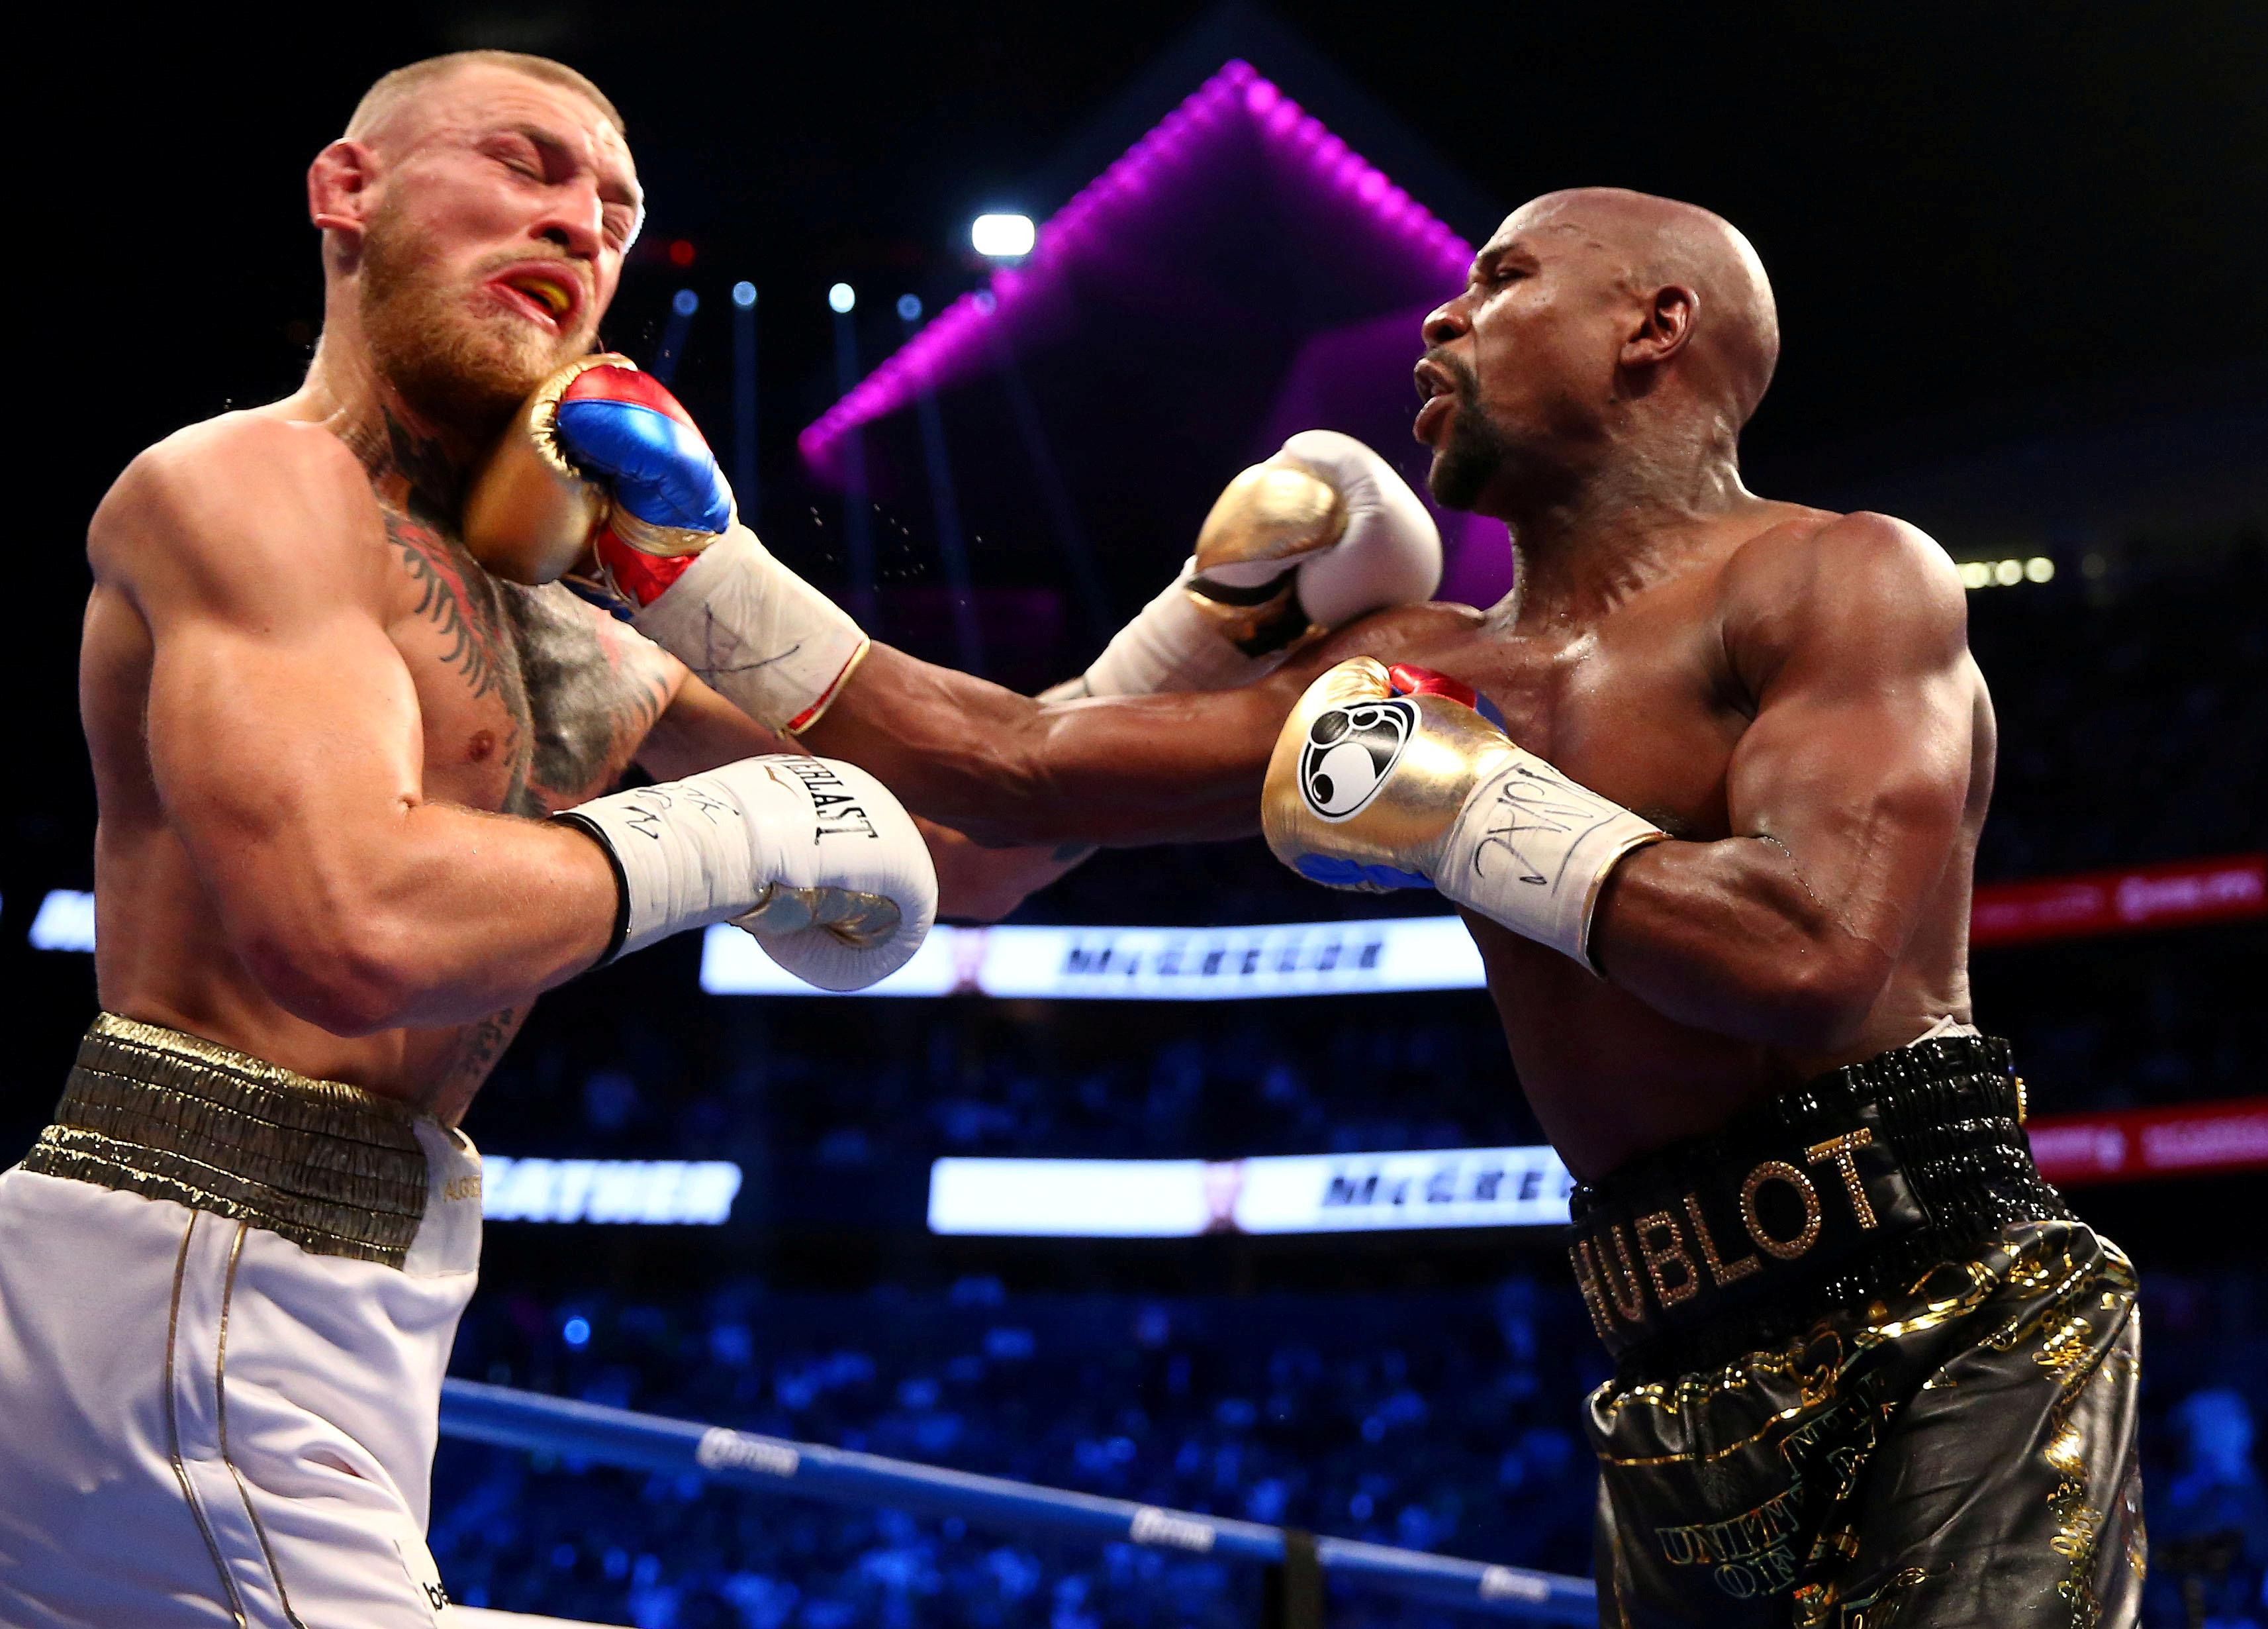 Conor McGregor is thought to have earned a staggering £77m for fighting Floyd Mayweather